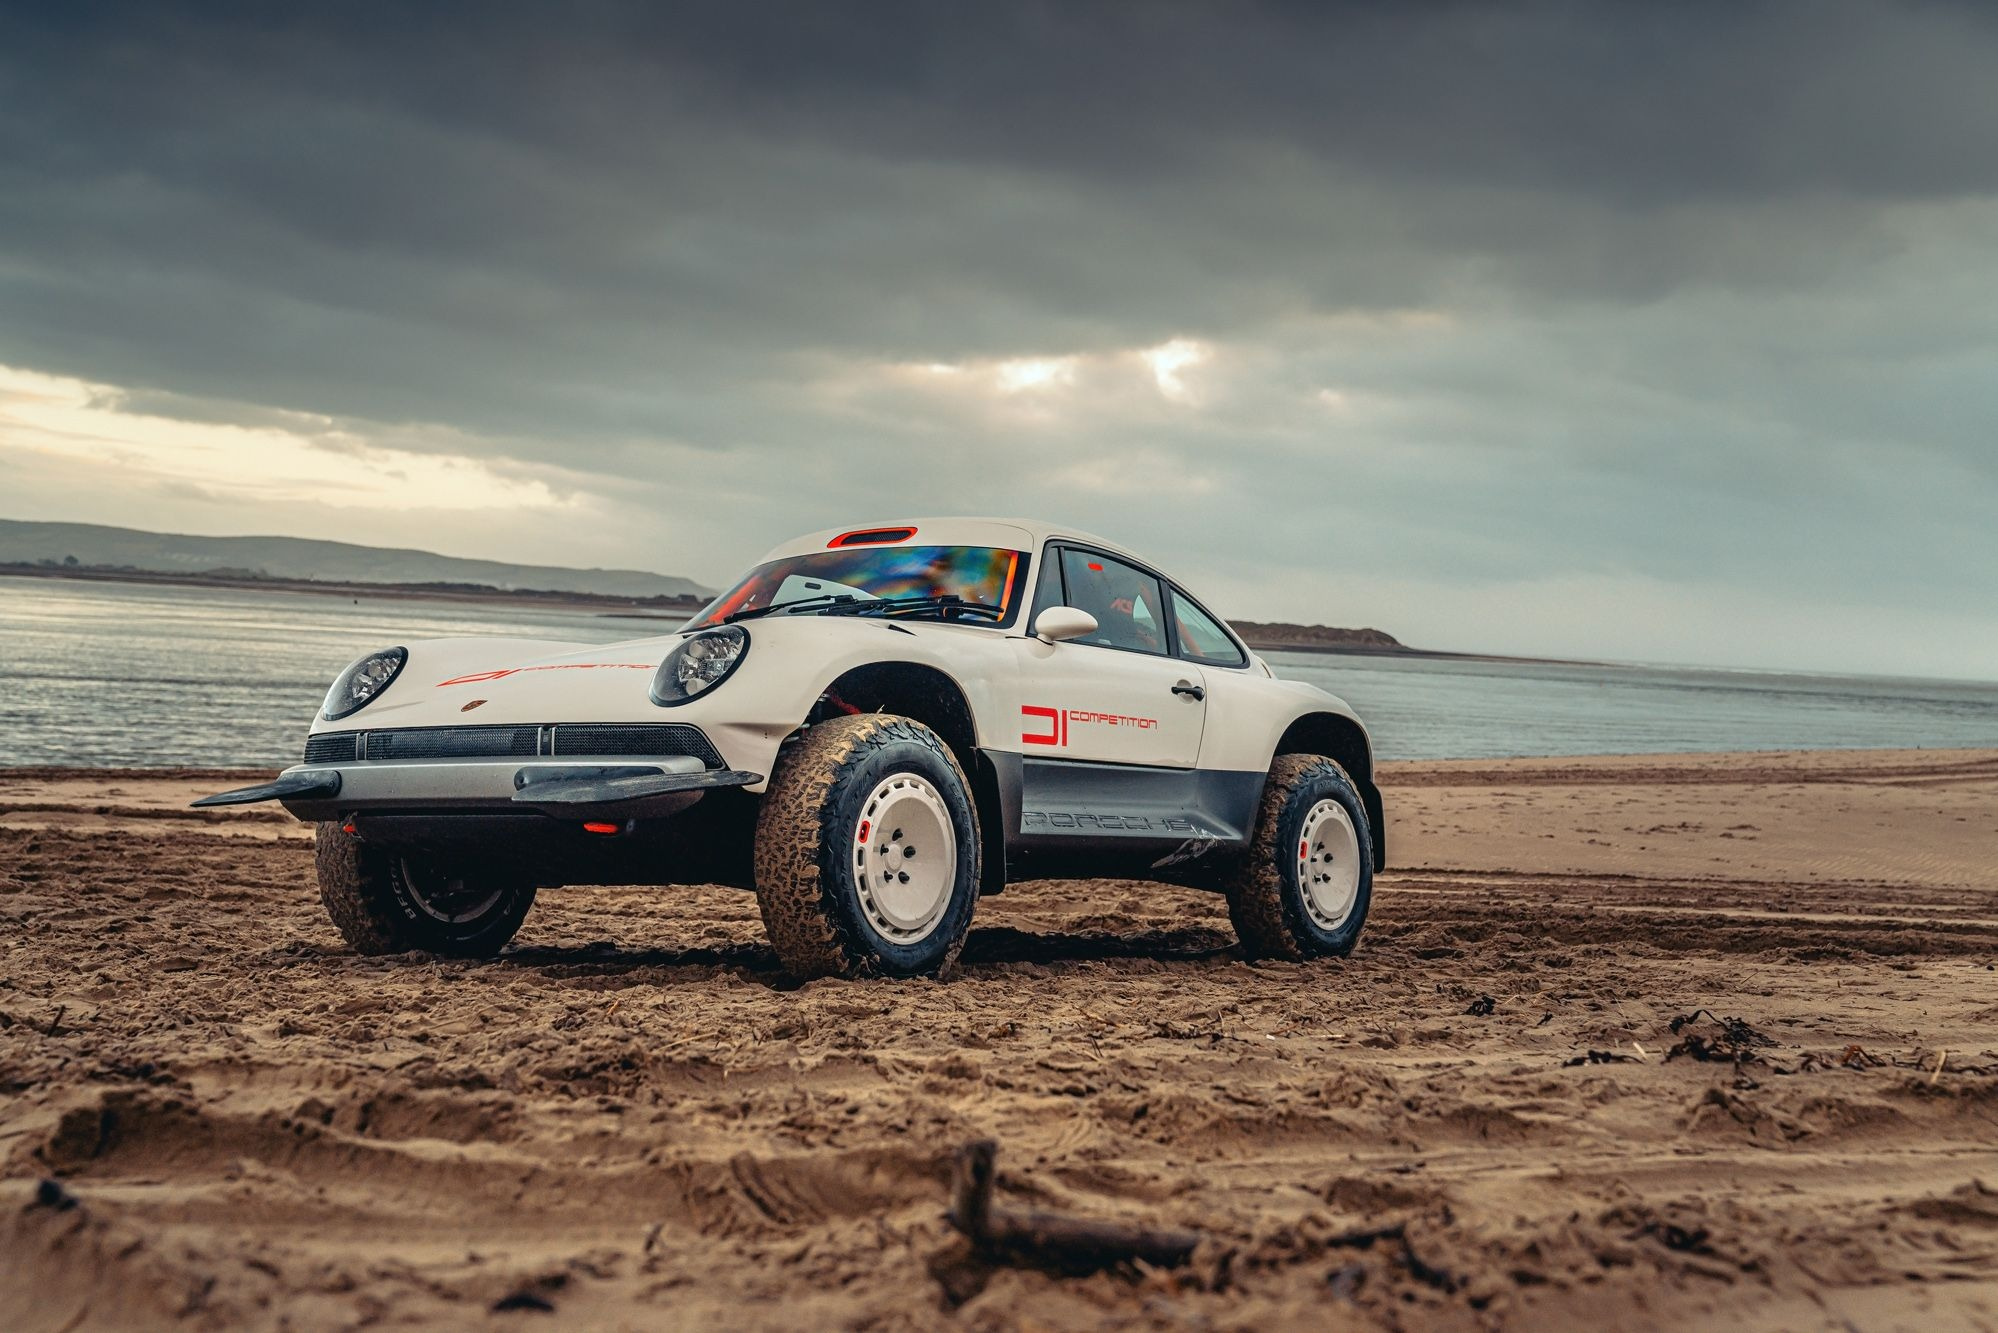 A client of Singer Vehicle Design wanted to participate in serious rallies, including the Dakar Rally and Baja 1000, so he ordered two custom 4WD Porsche 911s.